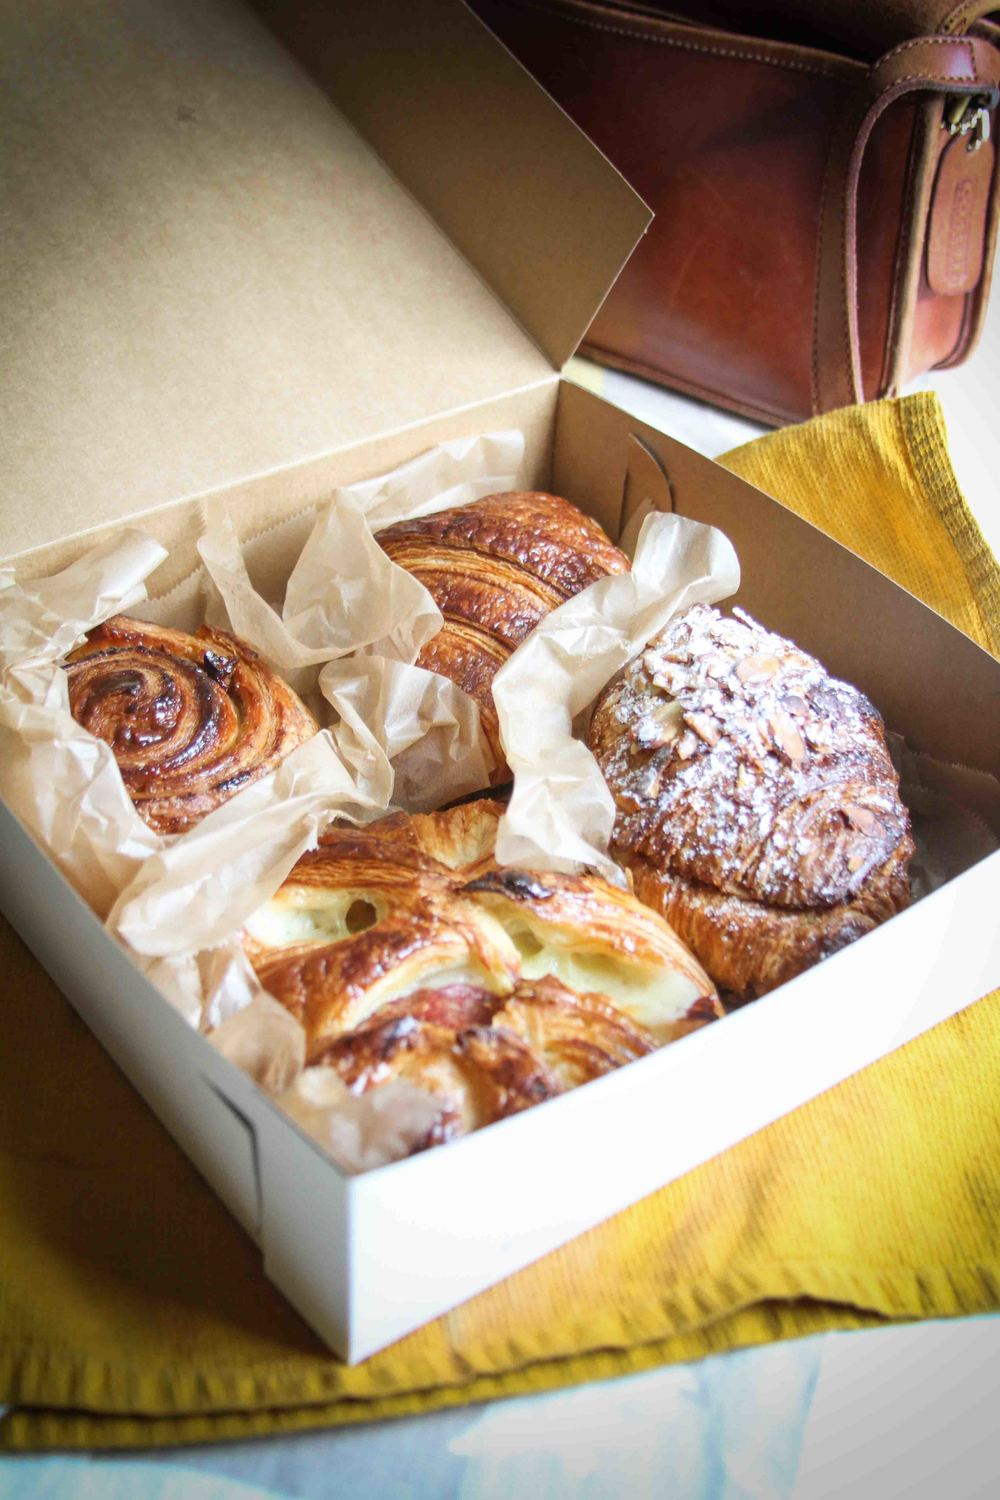 Pastries from Sub Rosa Bakery in Church Hill